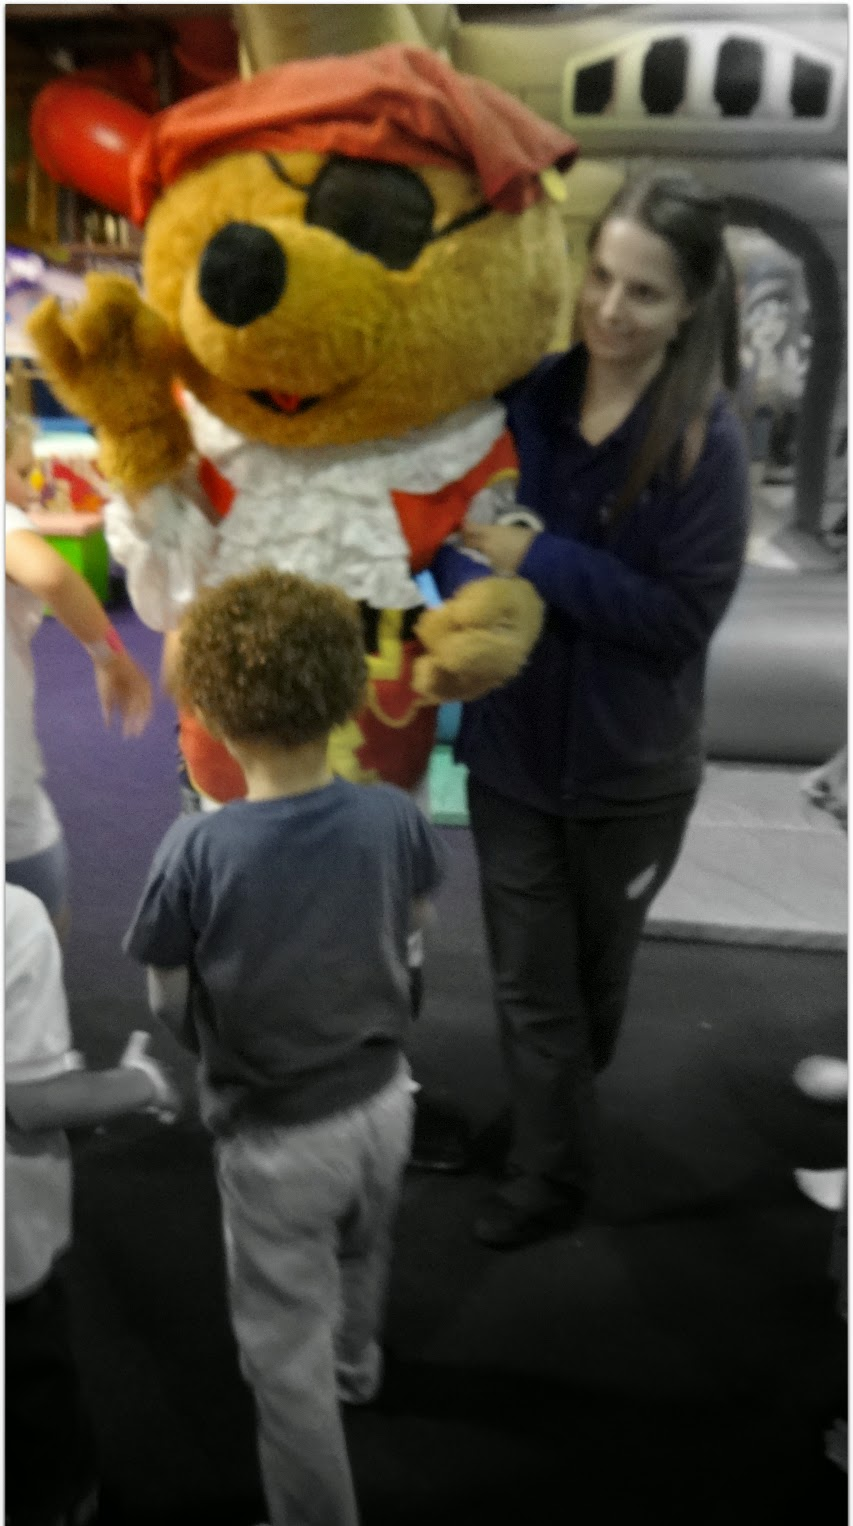 Meeting the Pirate Teddy